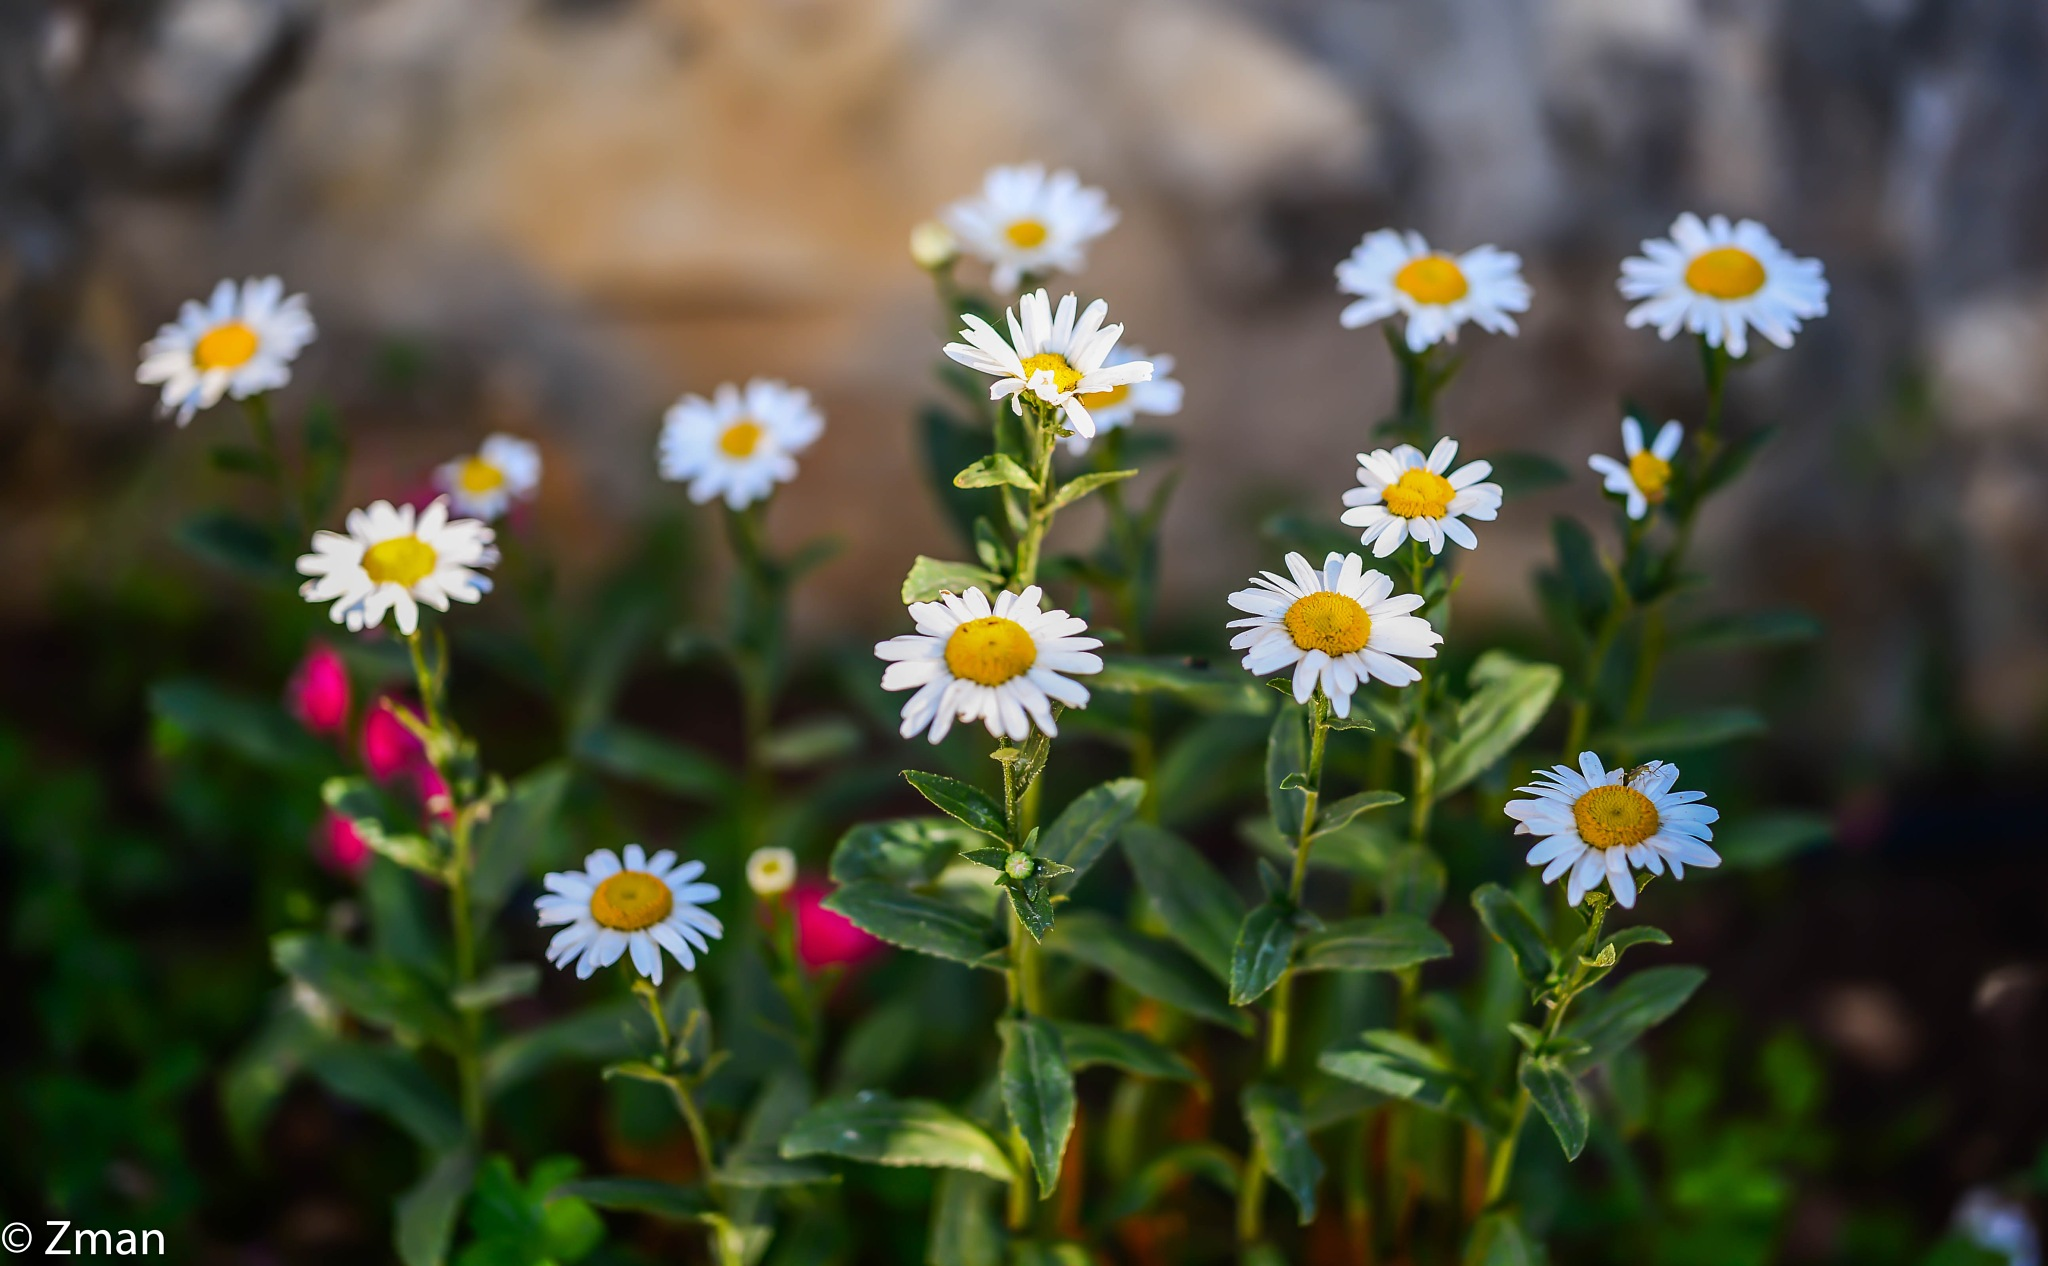 Group Of White Flowers by muhammad.nasser.963